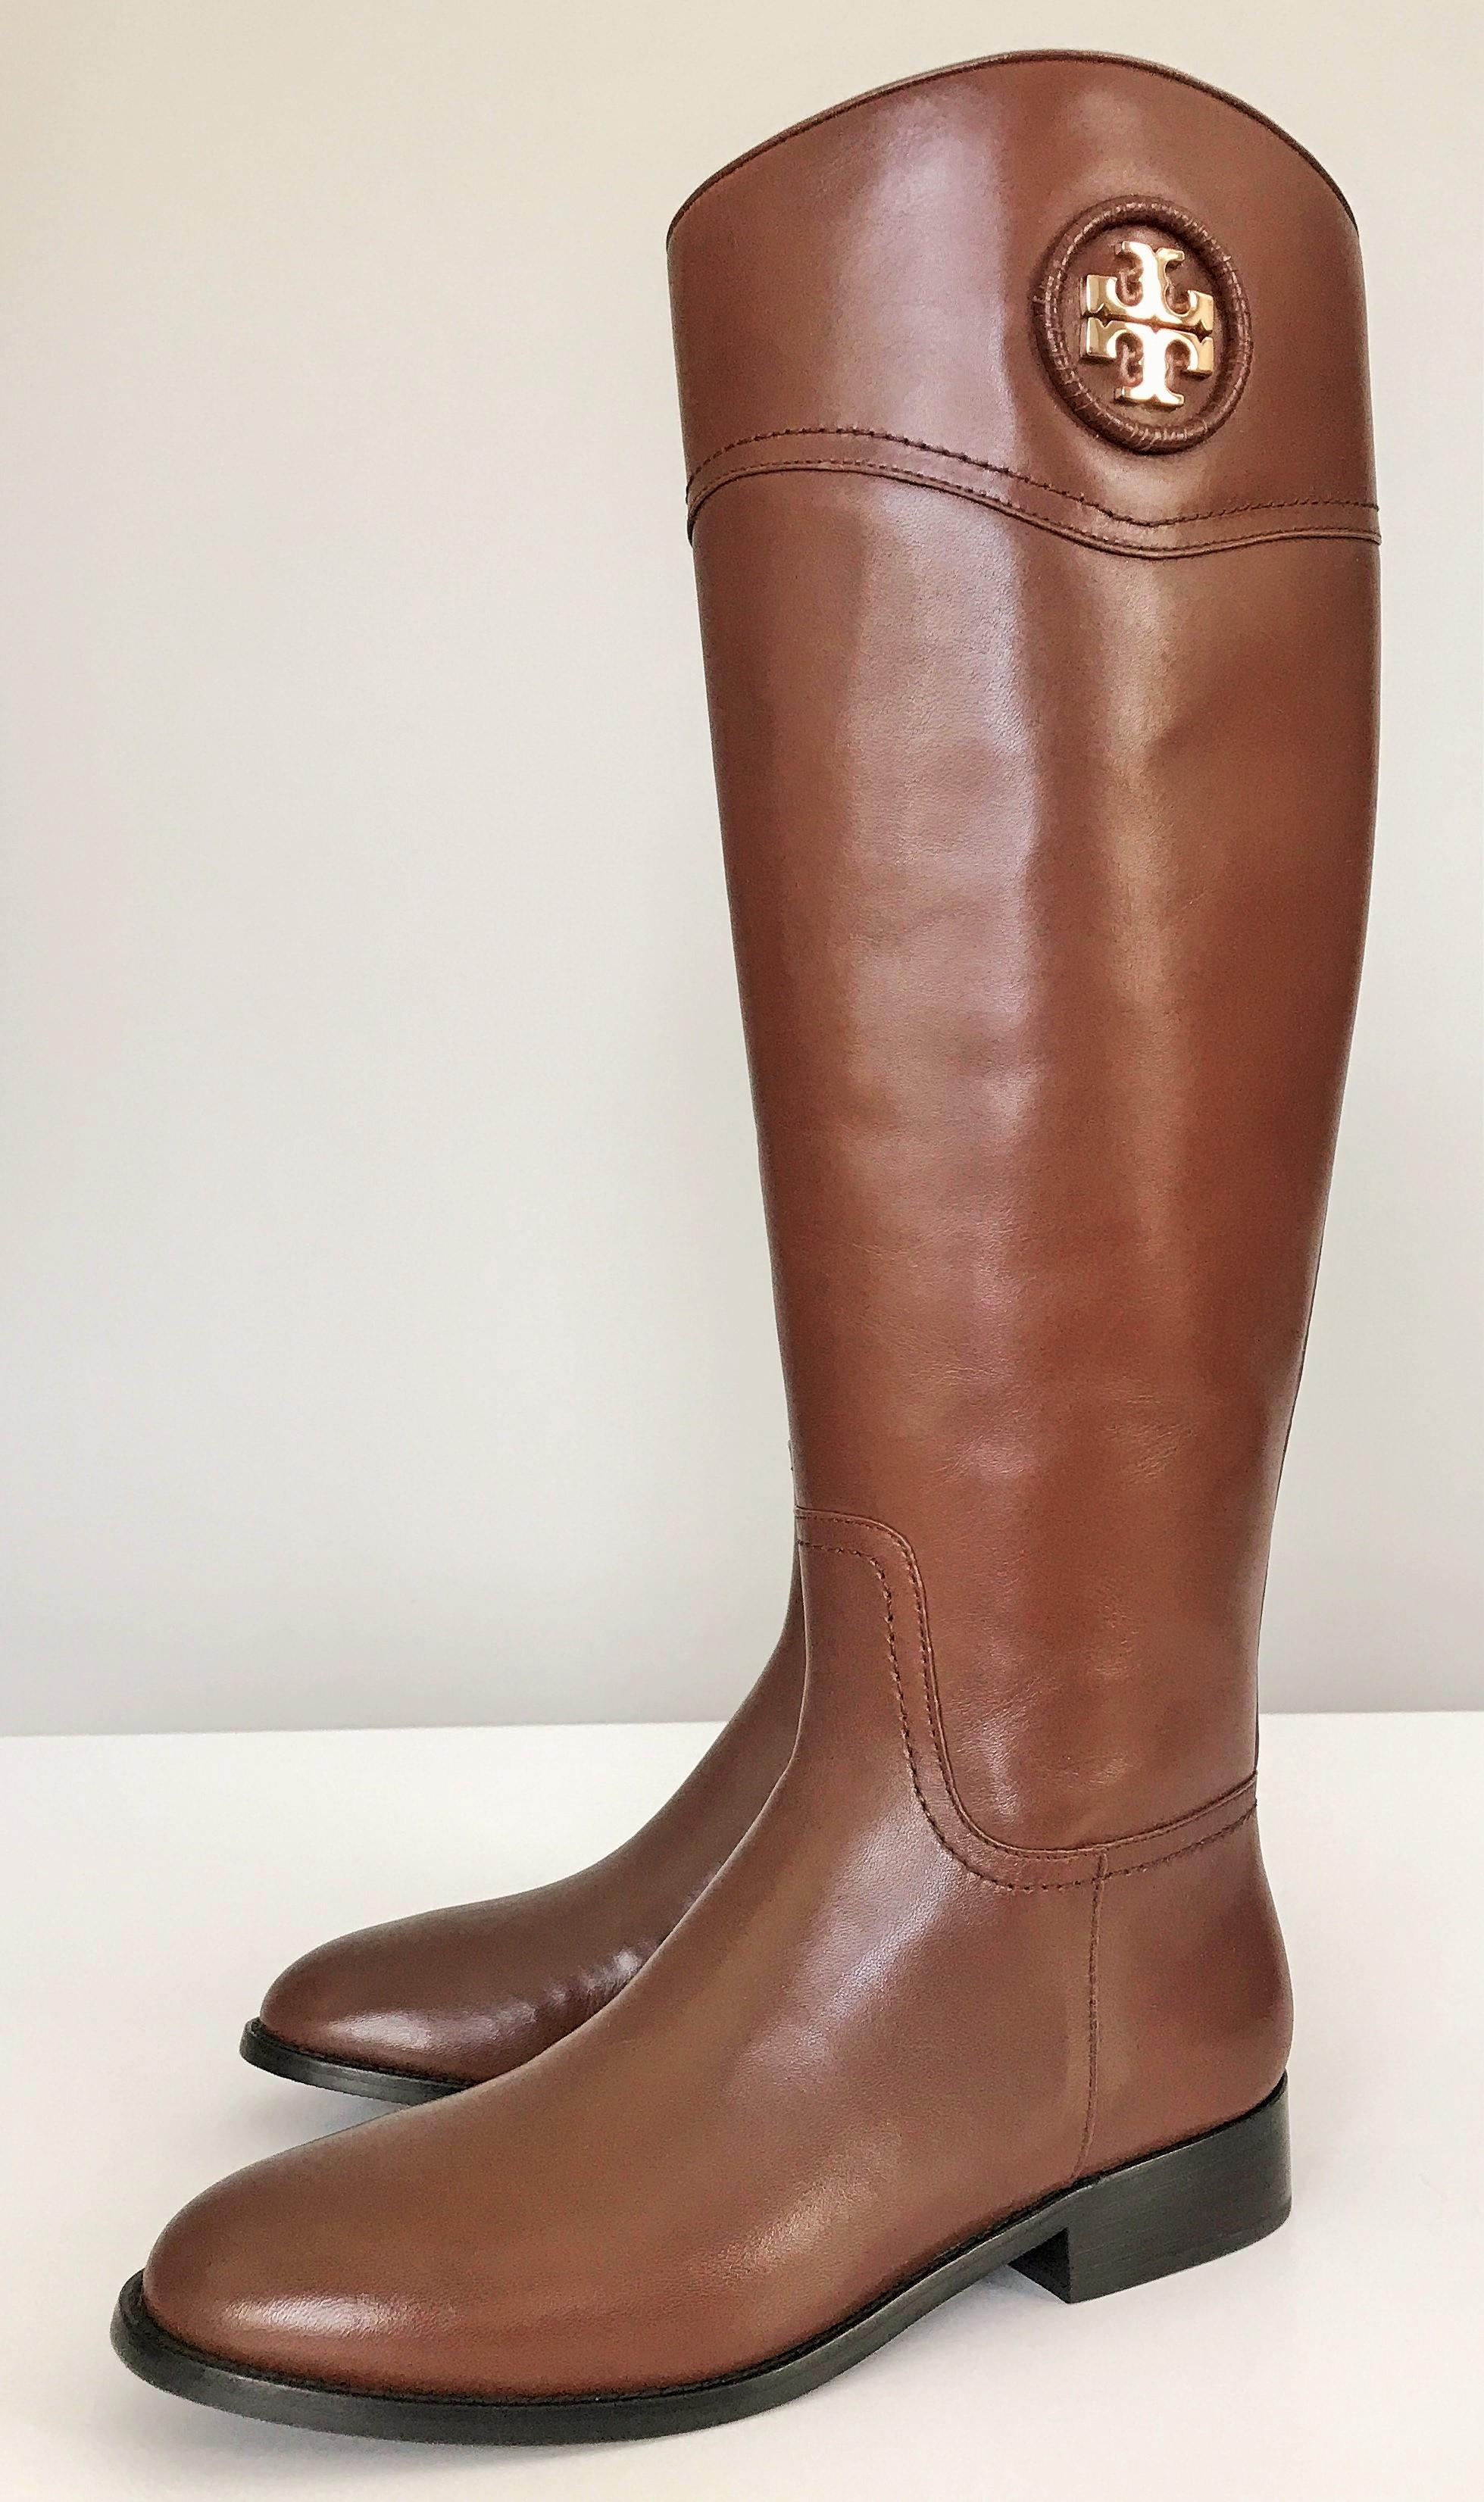 2bcfd1873bdf ... Men s Women s-Tory Burch Burch Burch Almond Gold Ashlynn Riding  Boots Booties ...